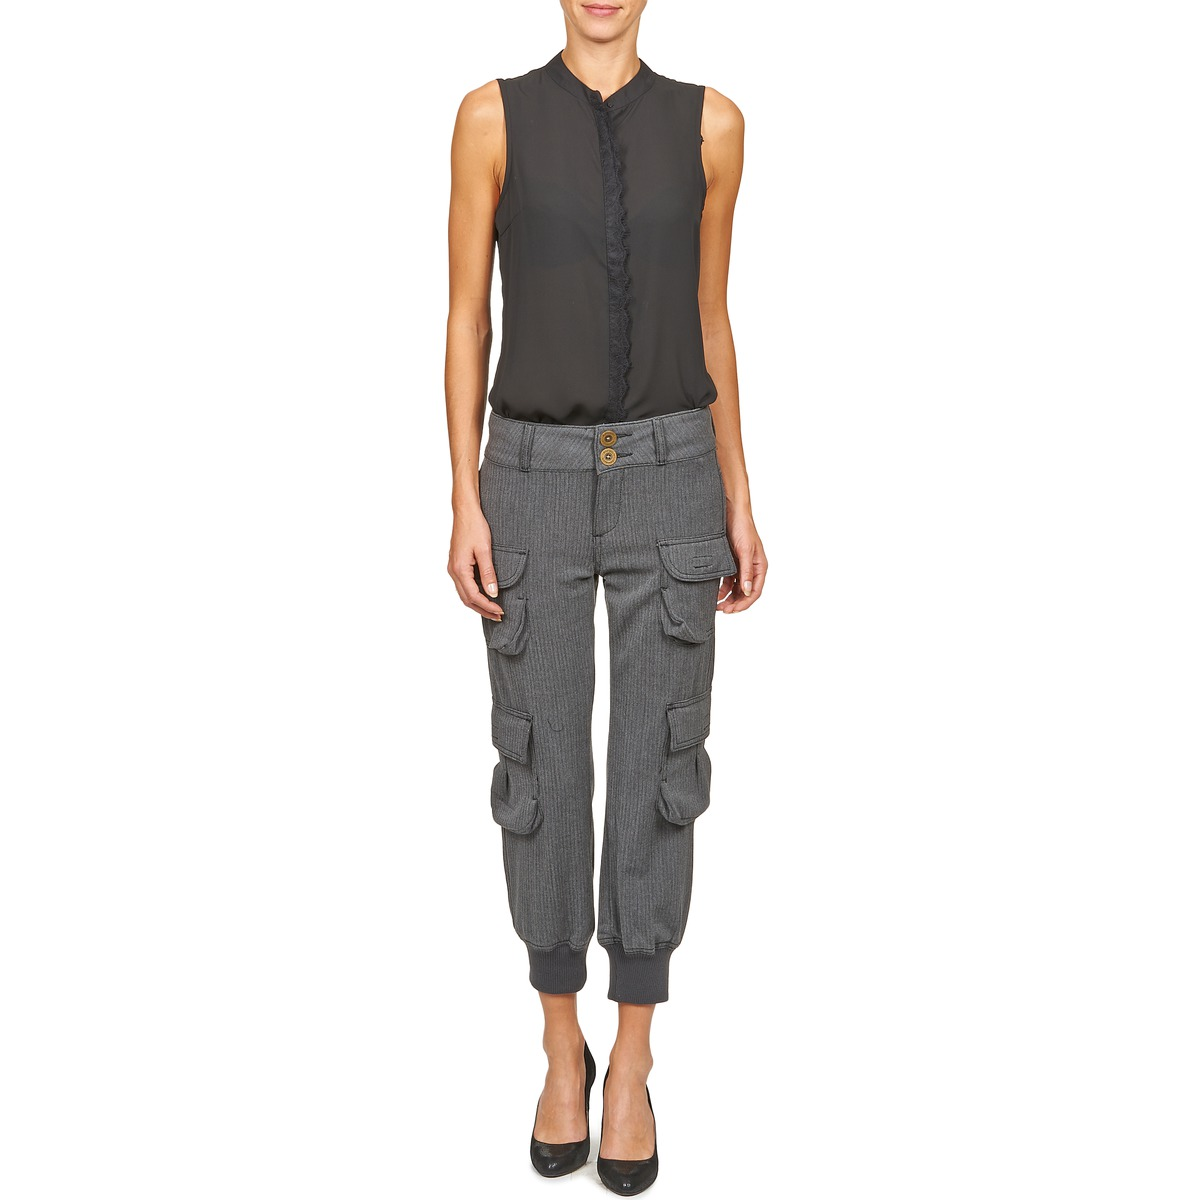 pantalon cargo desigual plantia gris pantalon femme spartoo ventes pas. Black Bedroom Furniture Sets. Home Design Ideas